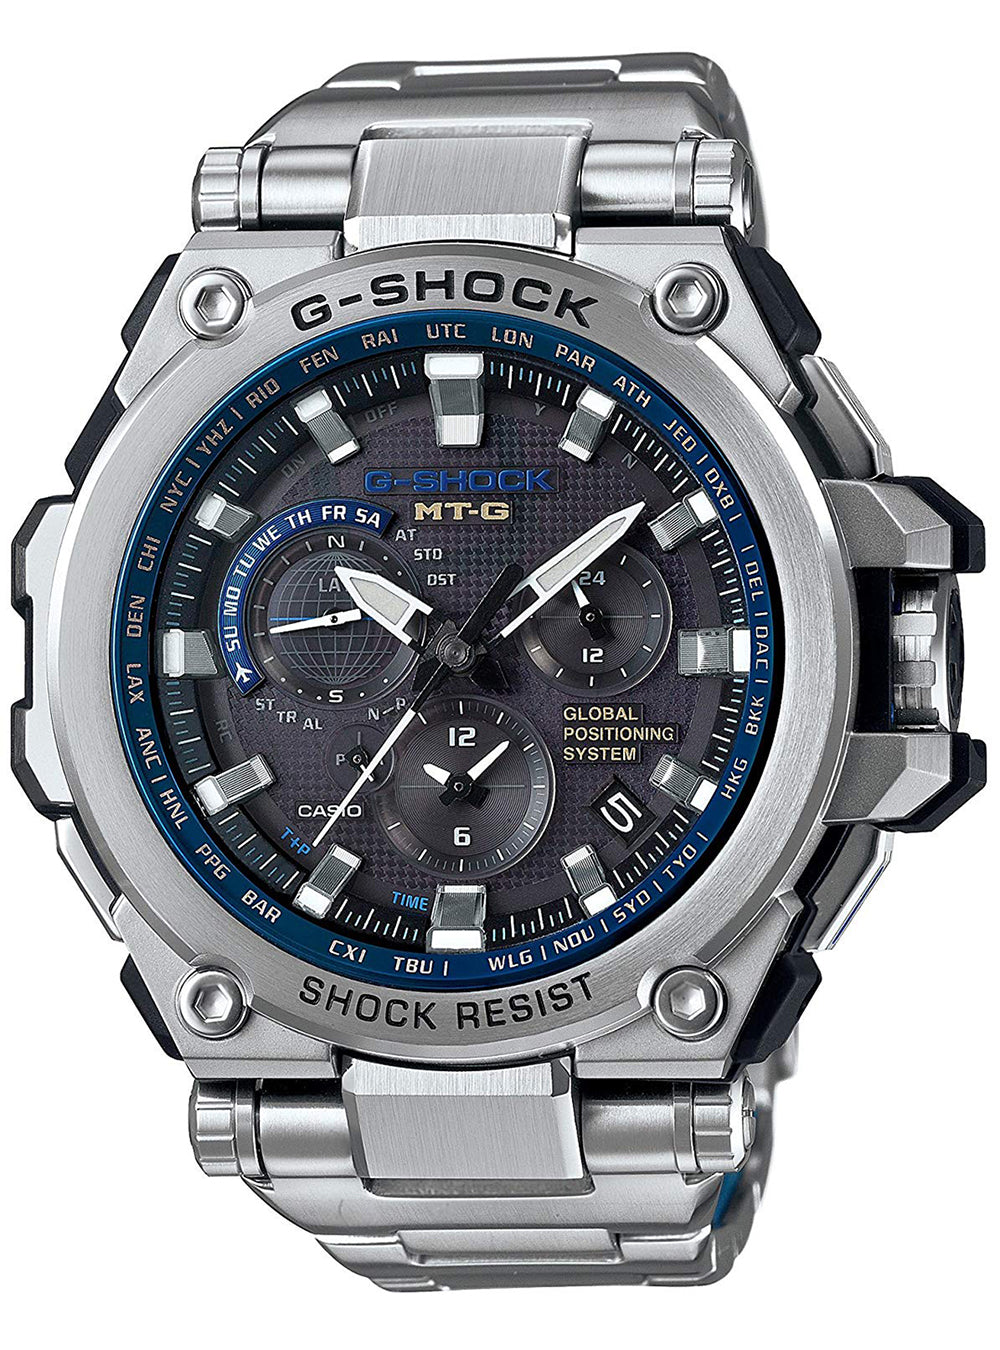 Casio G-Shock MTG-G1000D-1A2JF GPS Hybrid Solar Radio MADE IN JAPAN JDM (Japanese Domestic Market)